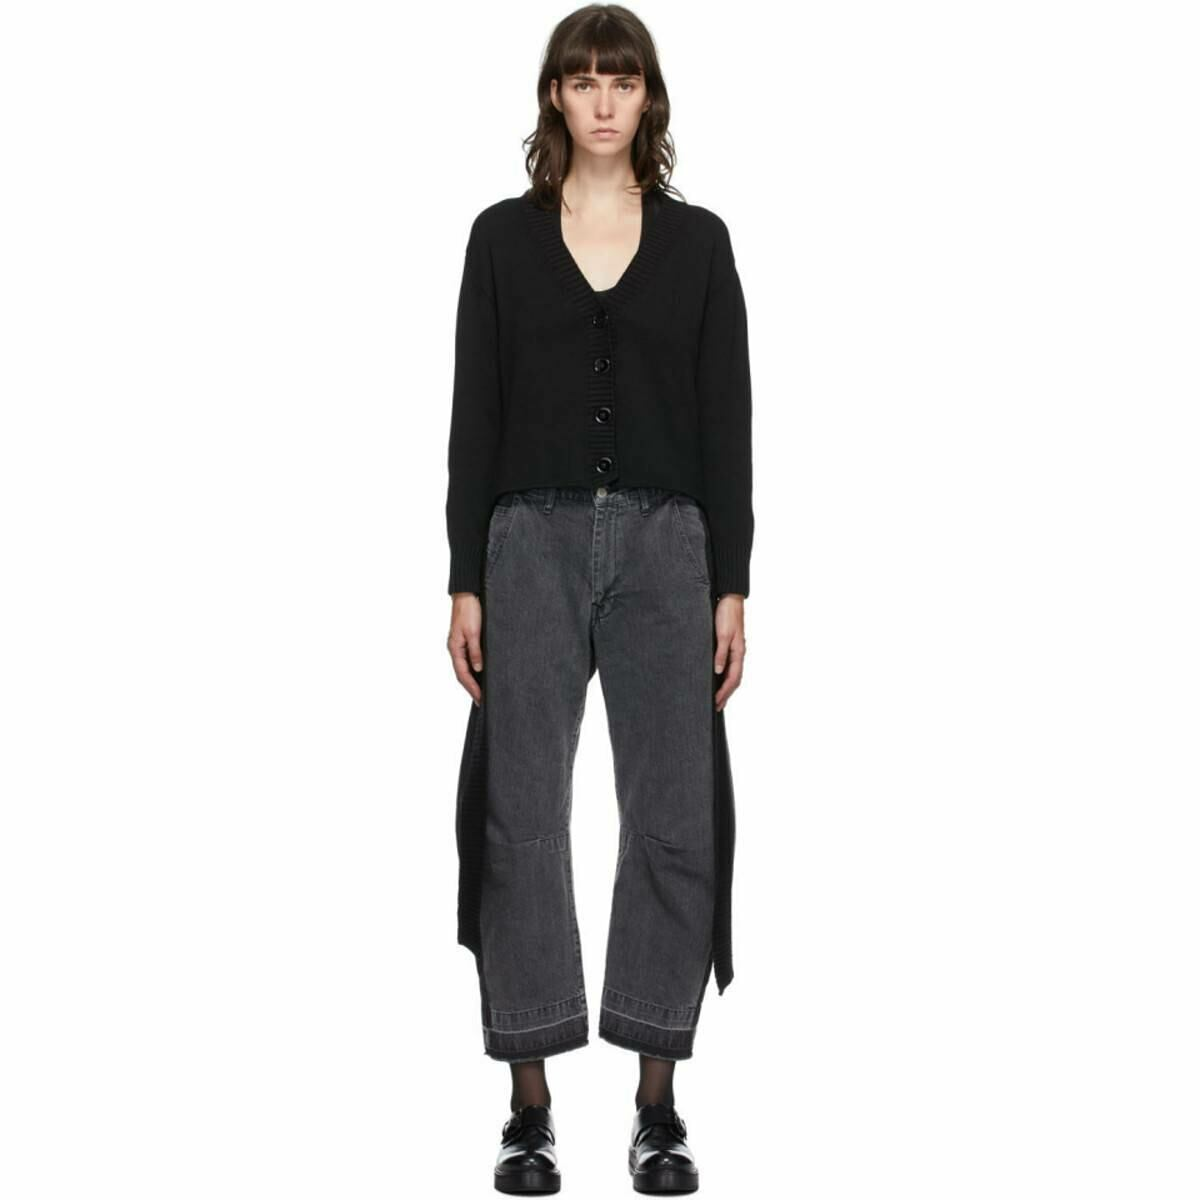 MM6 Maison Margiela Black Boxy Loose Rib Cardigan Ssense USA WOMEN Women FASHION Womens KNITWEAR